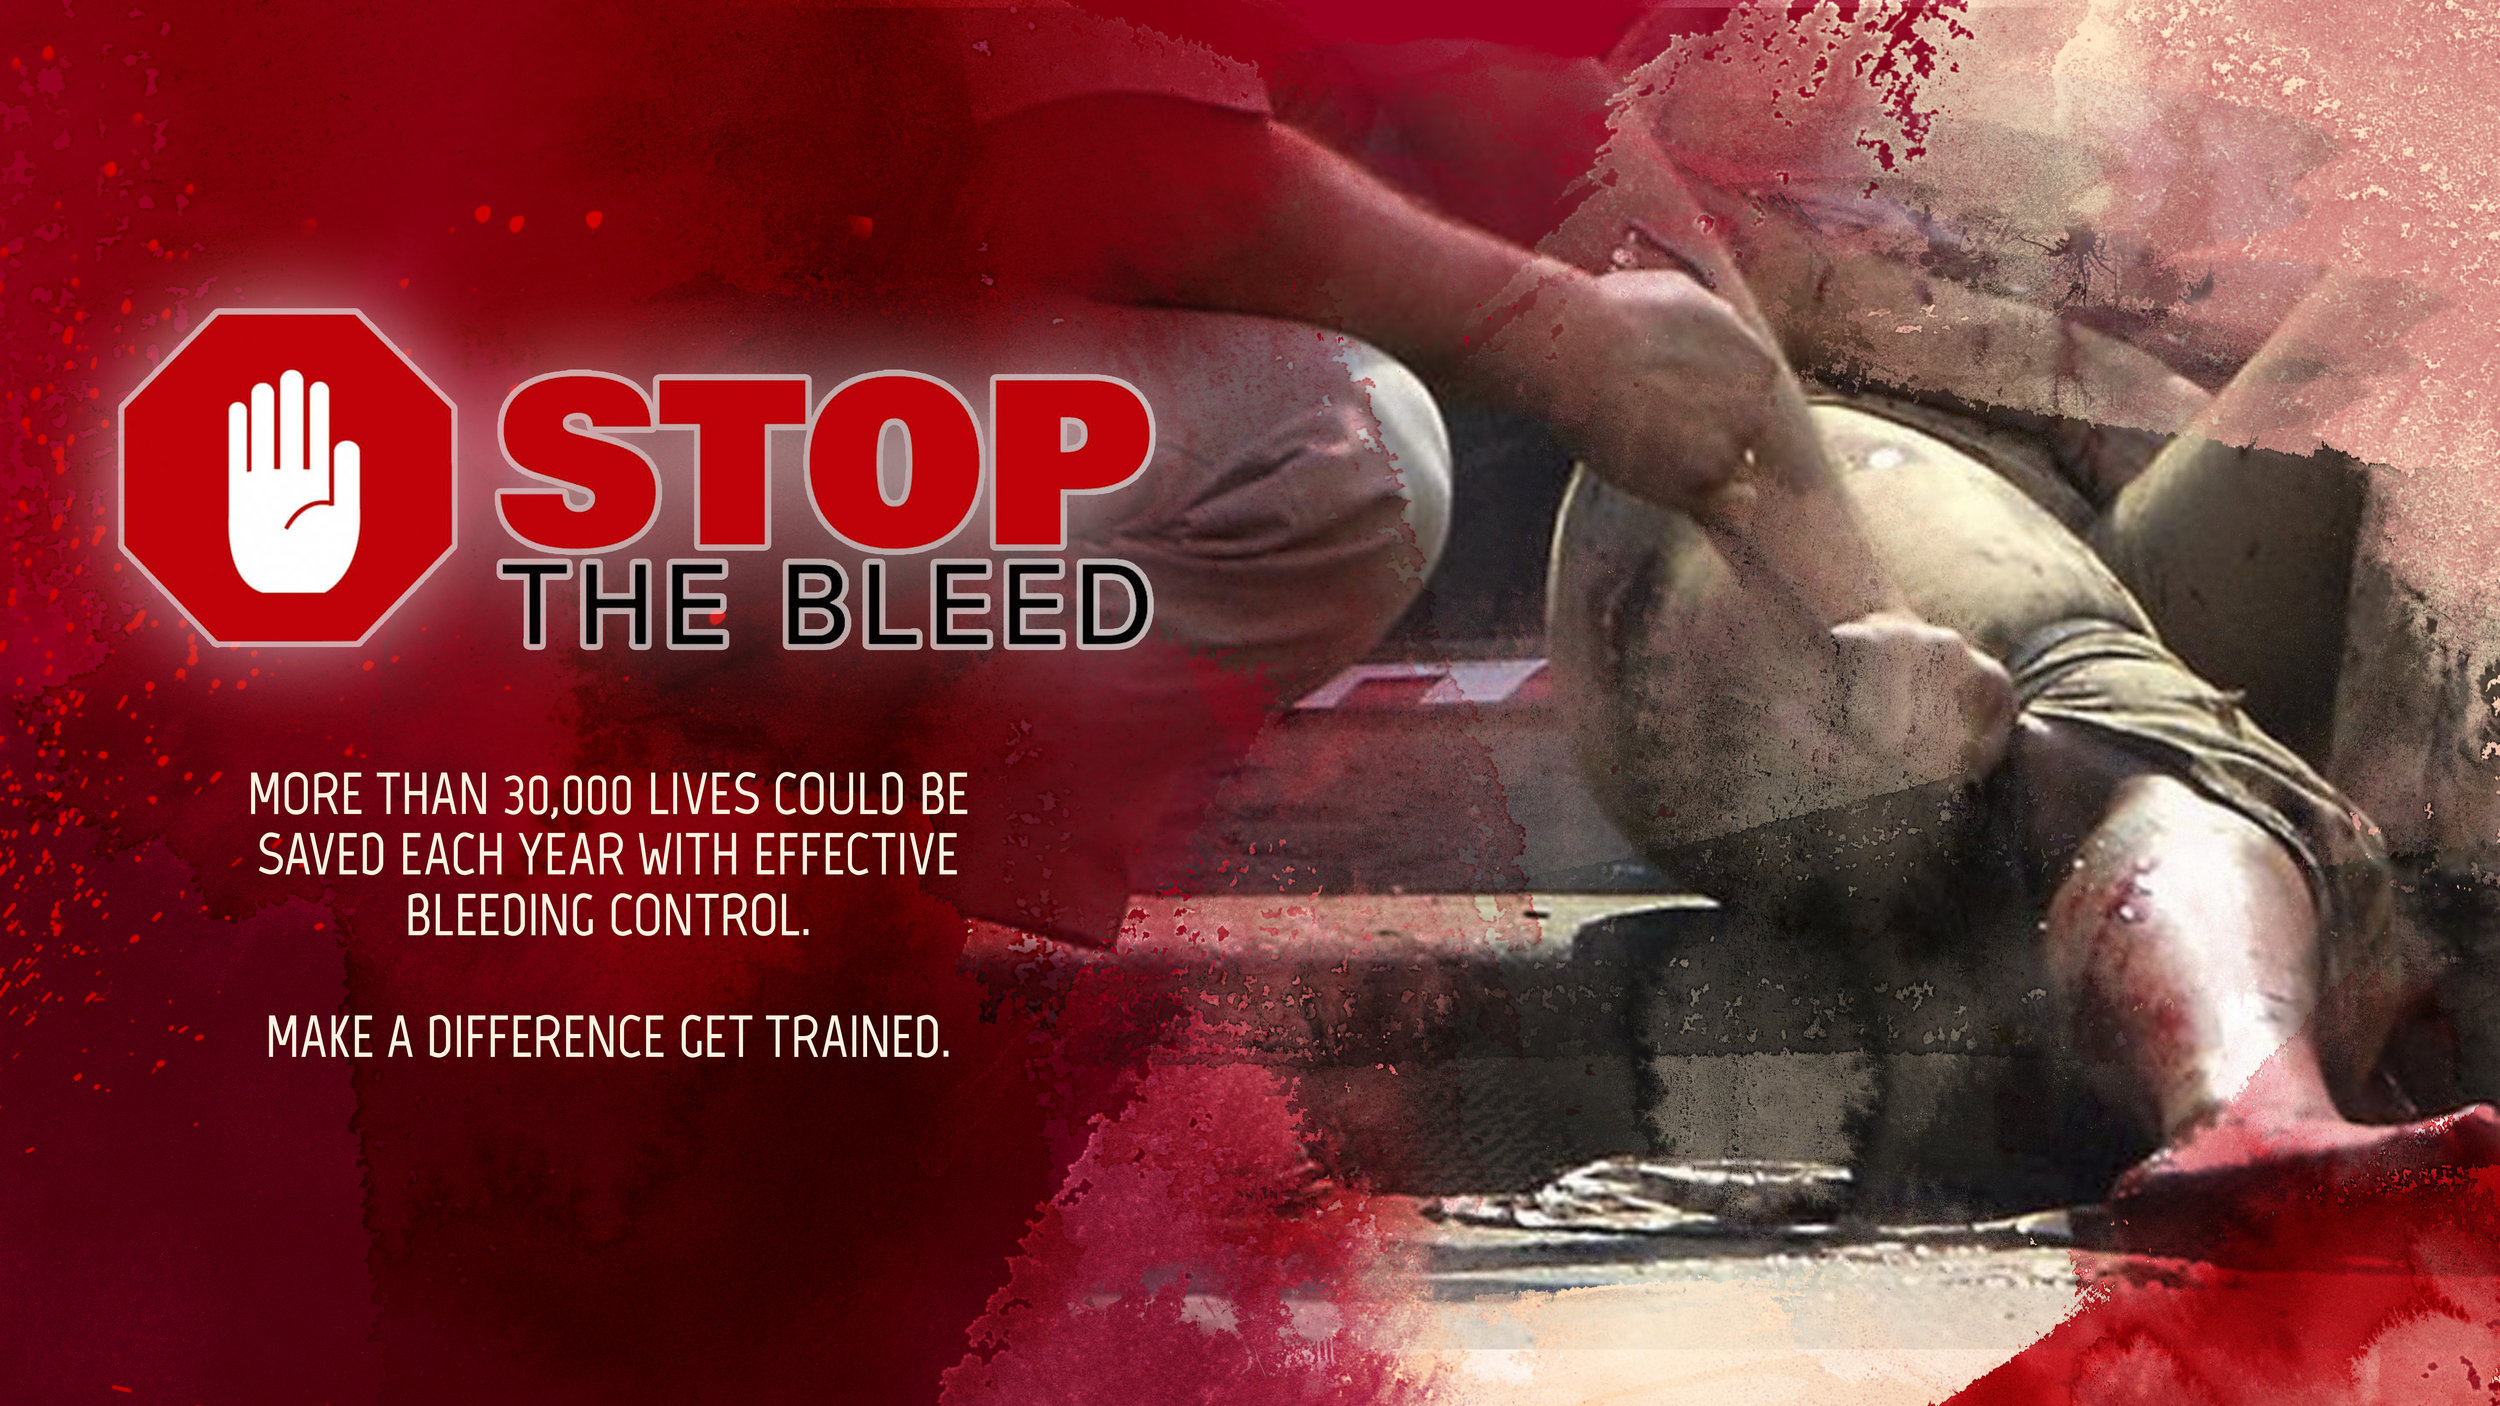 Saturday September 28th 10am - 11:30am - Filling the form out below will register you for the Stop The Bleed class on Saturday January 26th. Please fill out a form for each person. There is a limit of 30 participants for the class.